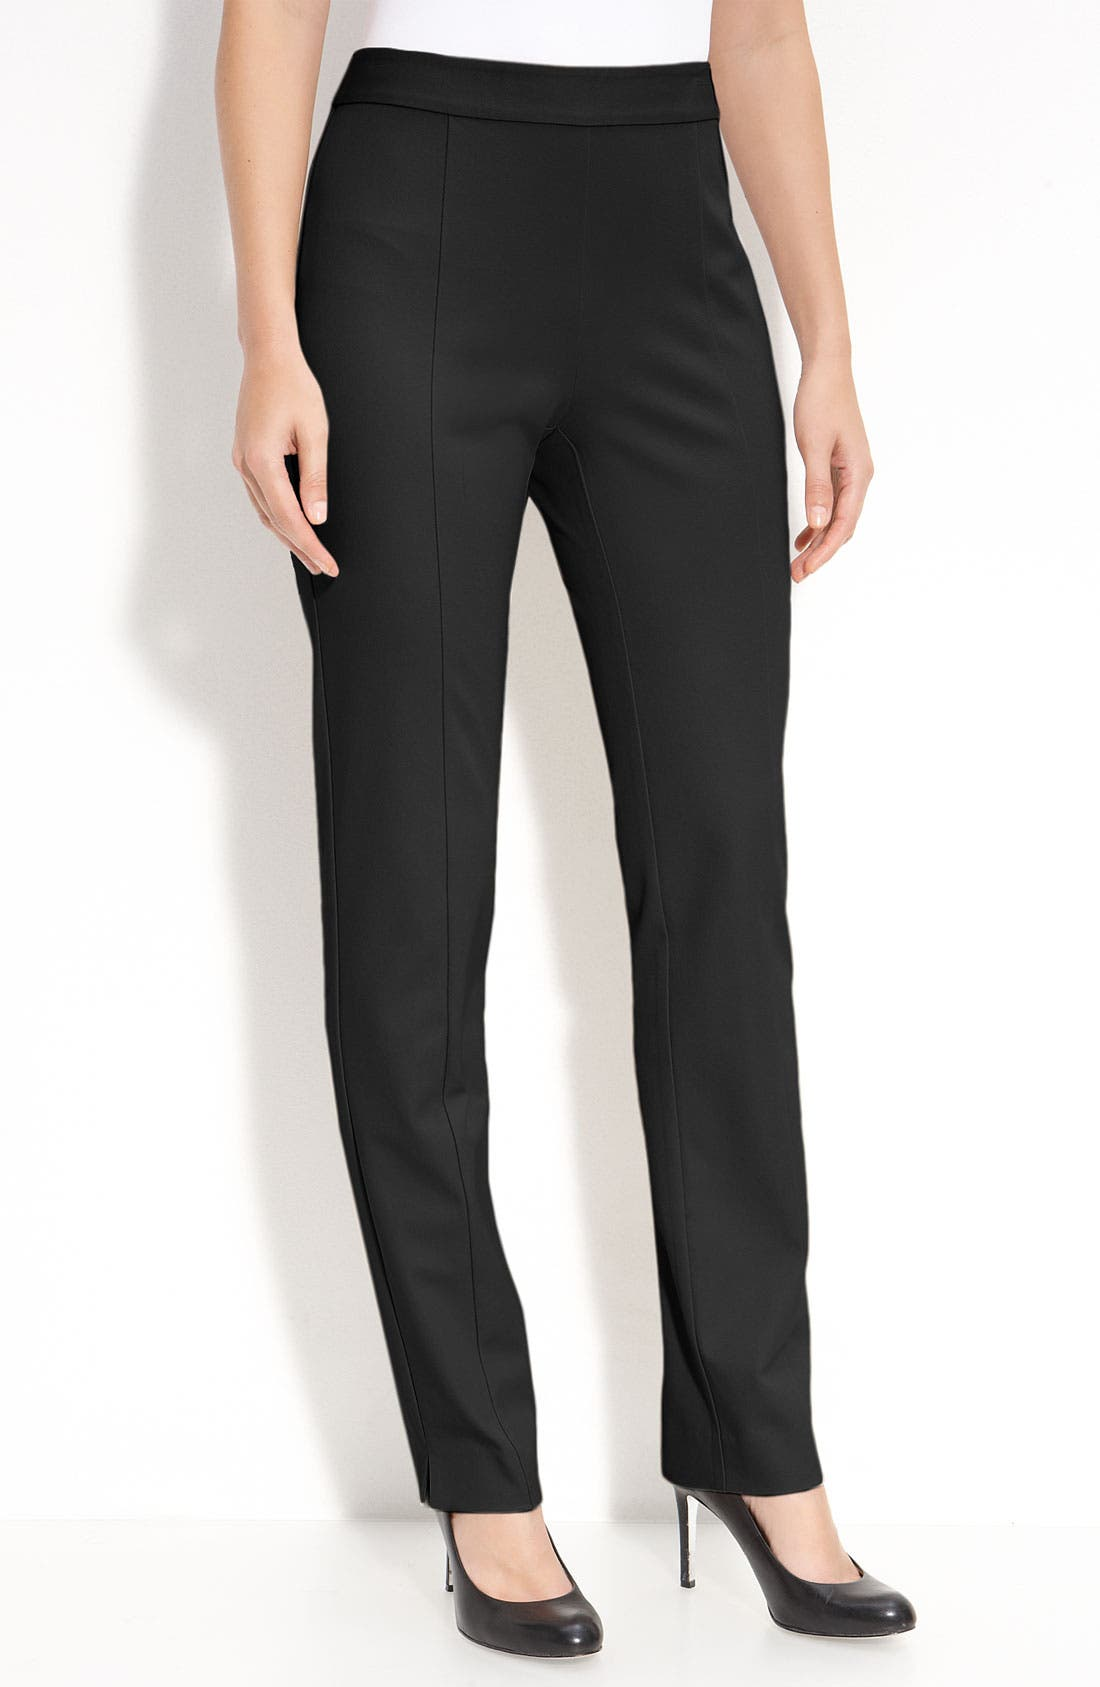 Main Image - Gallia Moda Stretch Cotton Pants